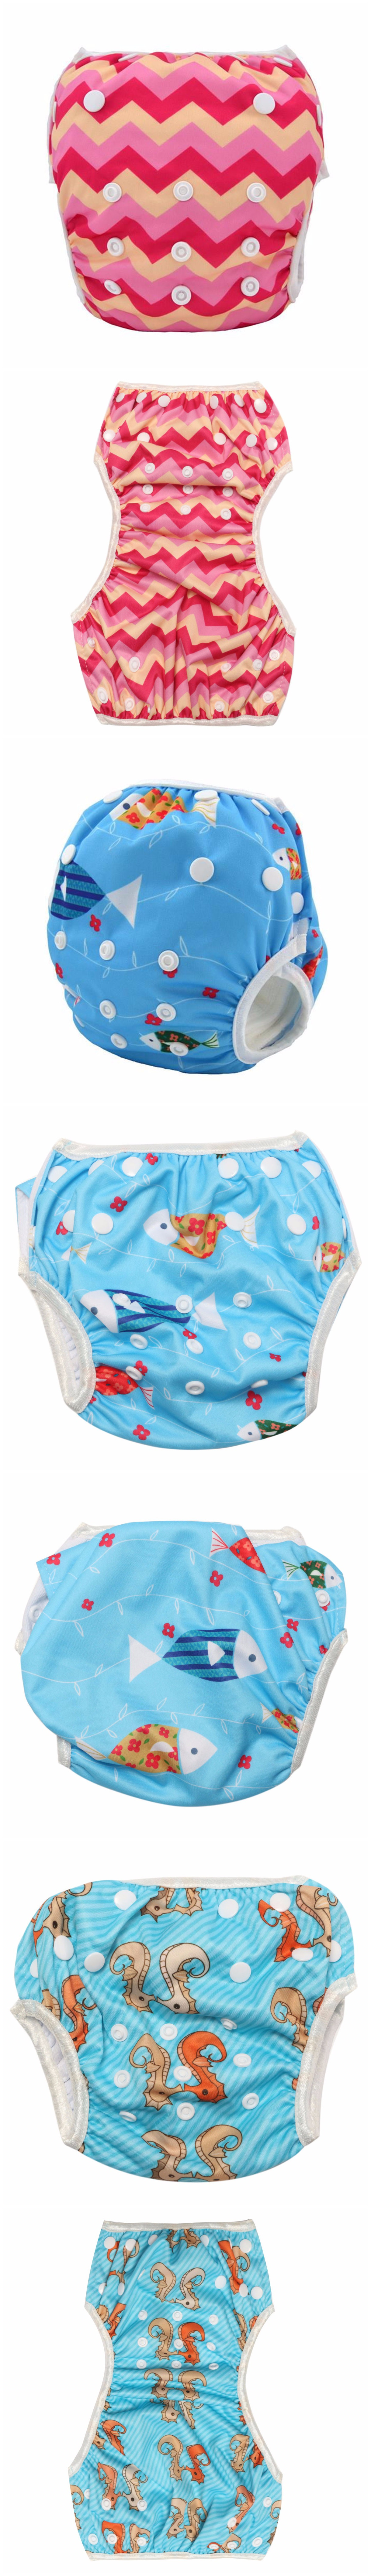 Child Kids Toddler Swiming Nappy Cover Baby Diapers Pants Nappies Reusable Washable